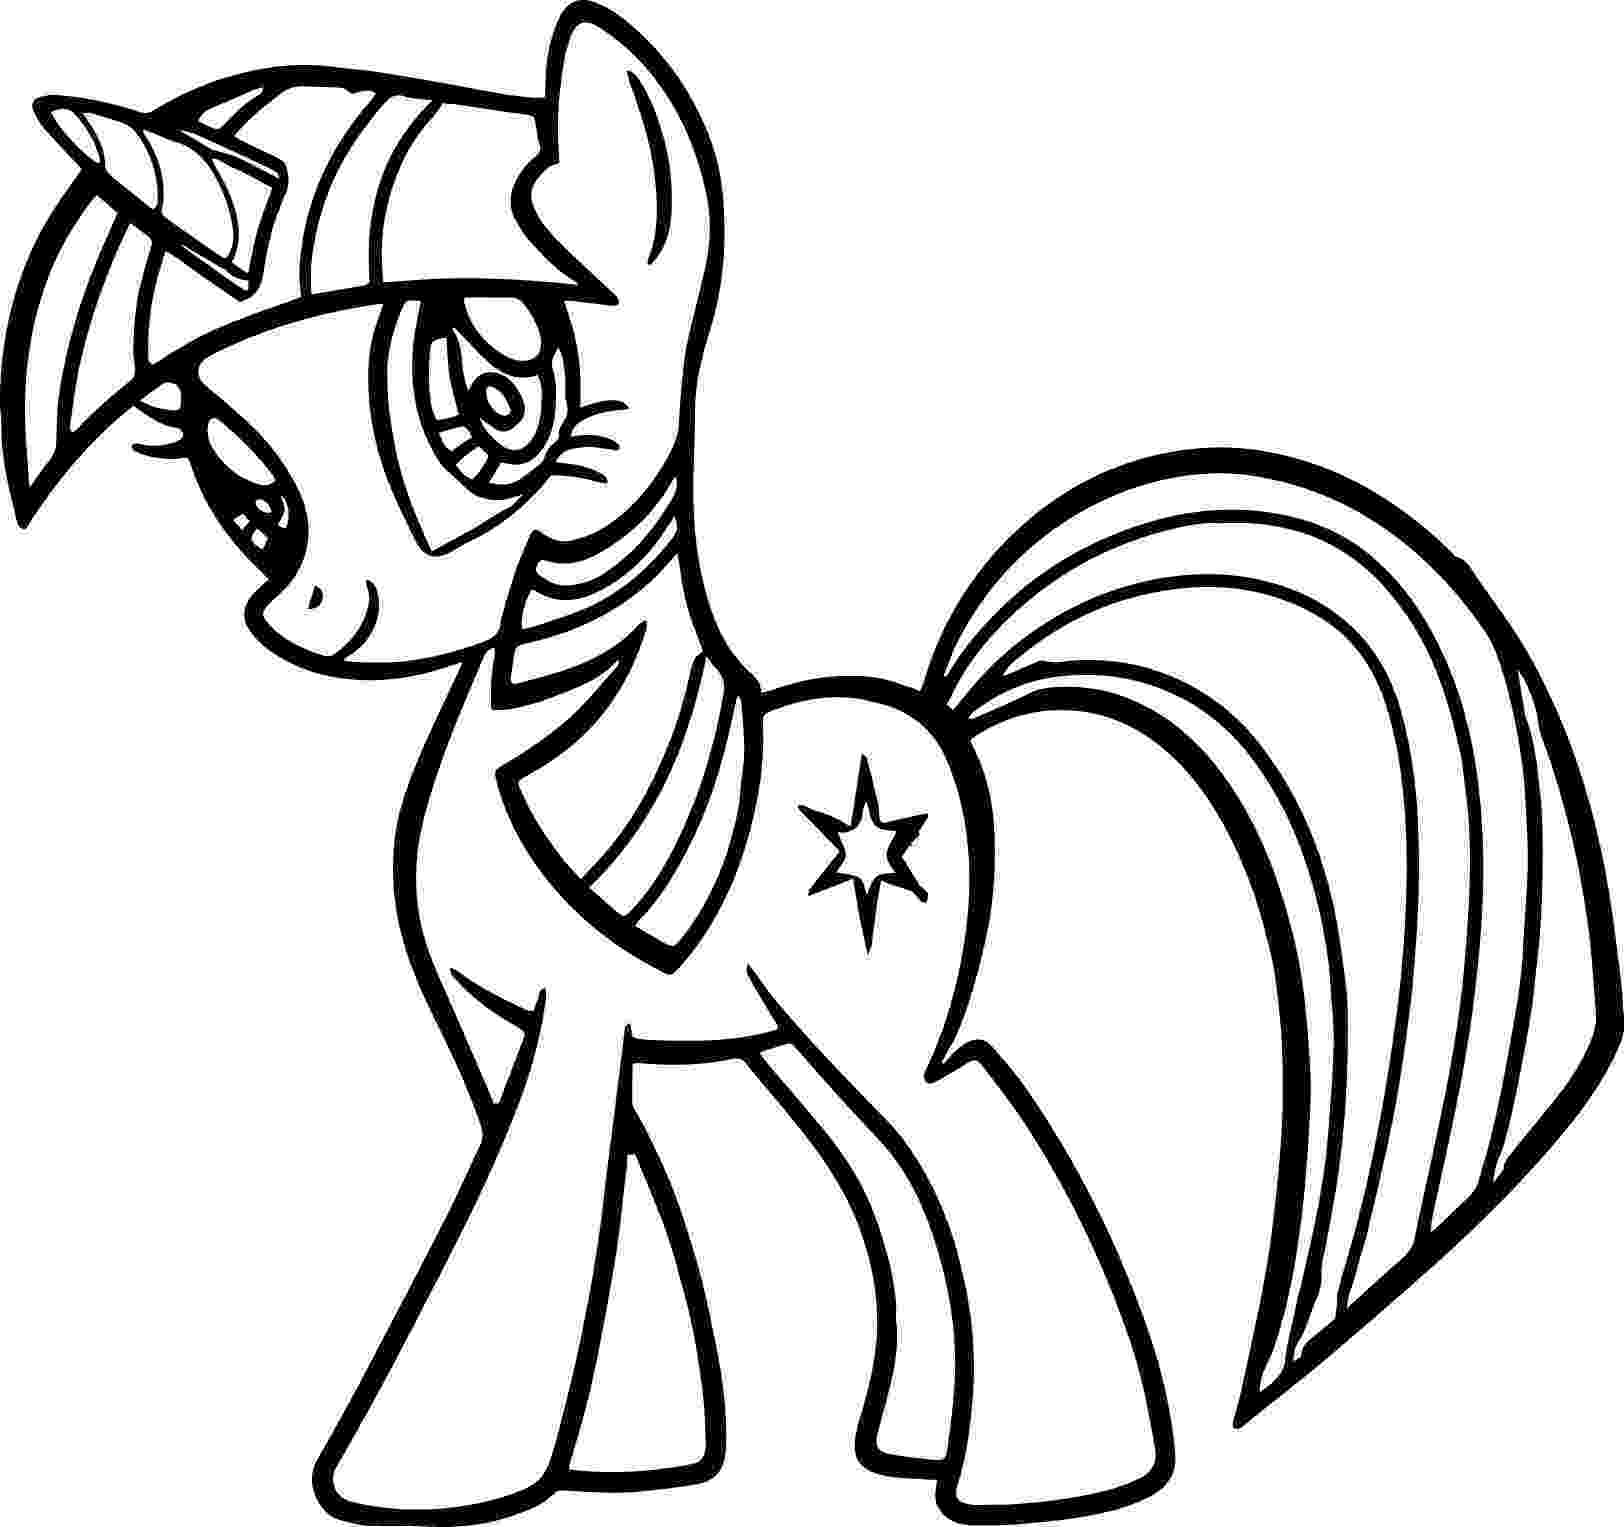 twilight my little pony coloring pages my little pony coloring pages twilight sparkle and friends twilight my coloring little pages pony